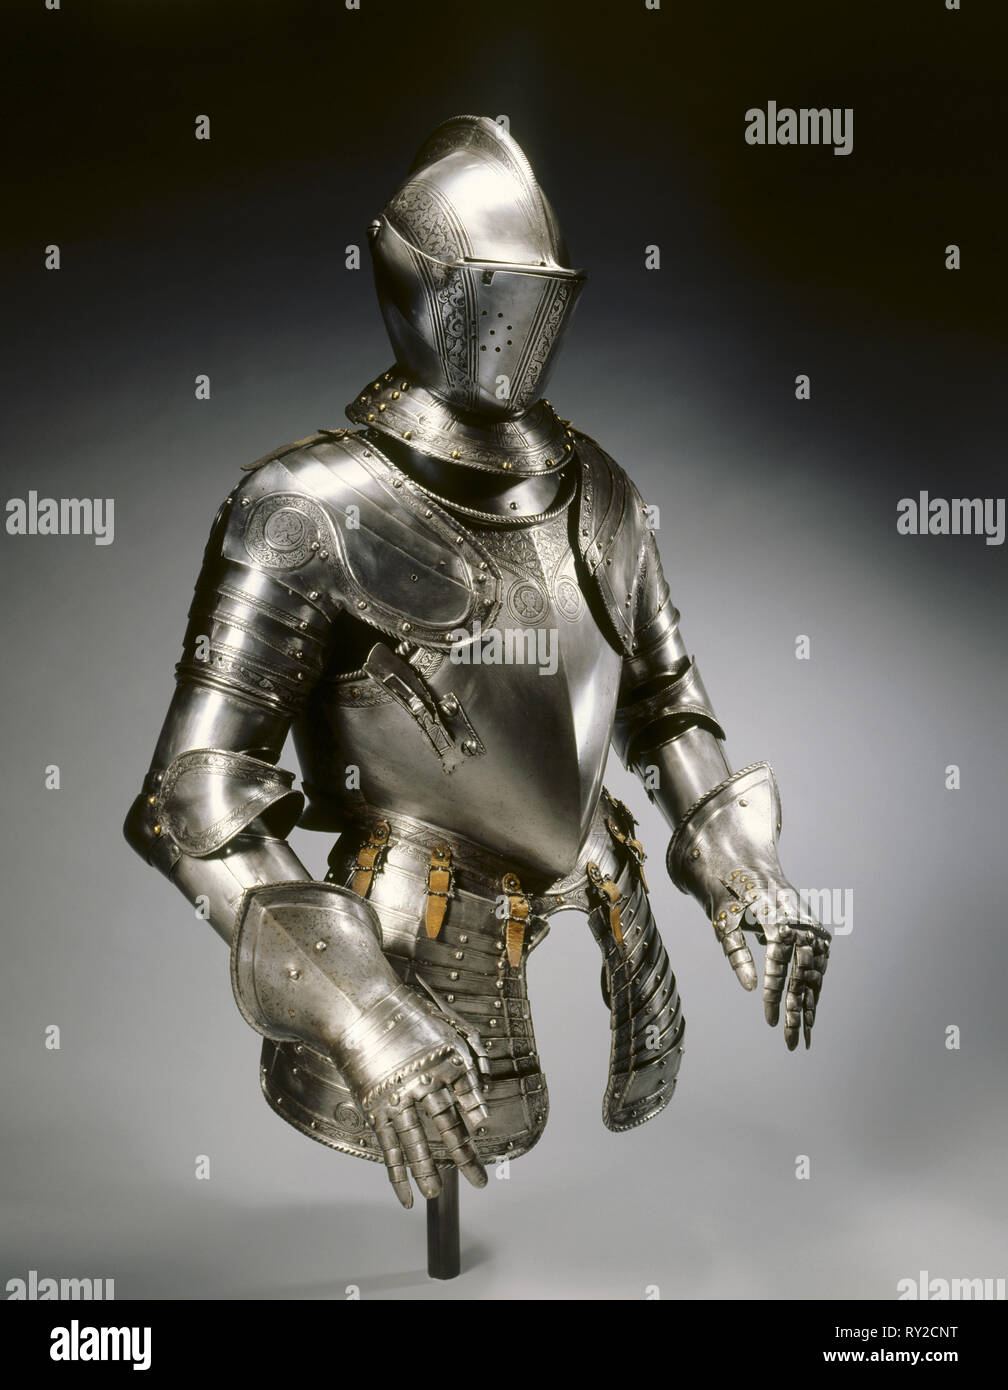 Half-Suit of Armor for the Field, c. 1575. North Italy, Brescia (?), 16th century. Steel with etched decorative bands and roundels - Stock Image